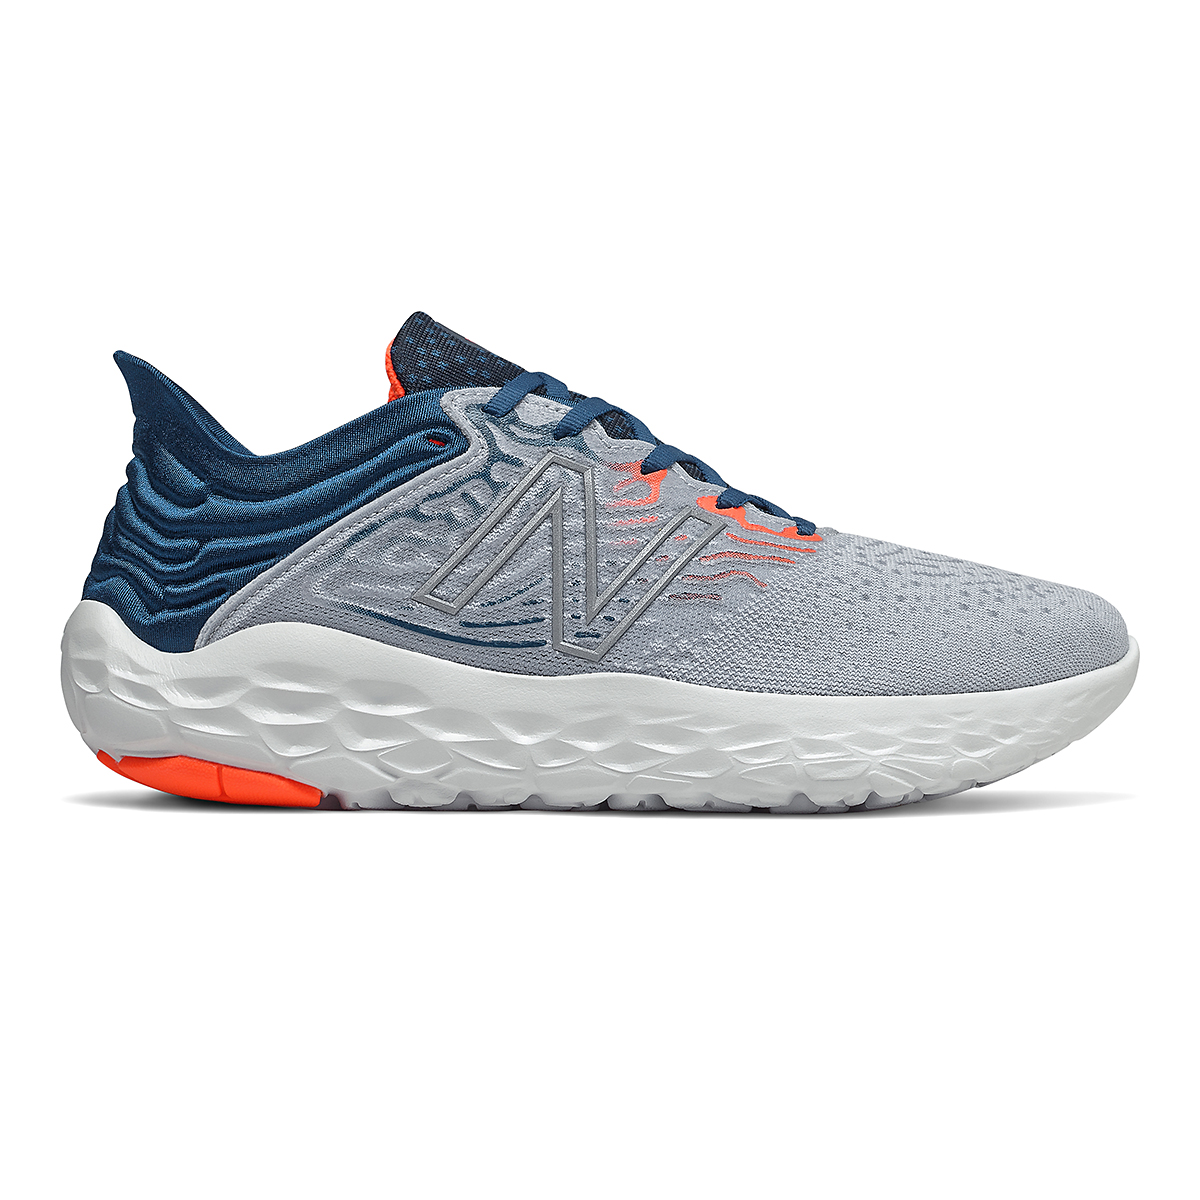 Men's New Balance Beacon V3 Running Shoe - Color: Light Cyclone - Size: 6 - Width: Wide, Light Cyclone, large, image 1